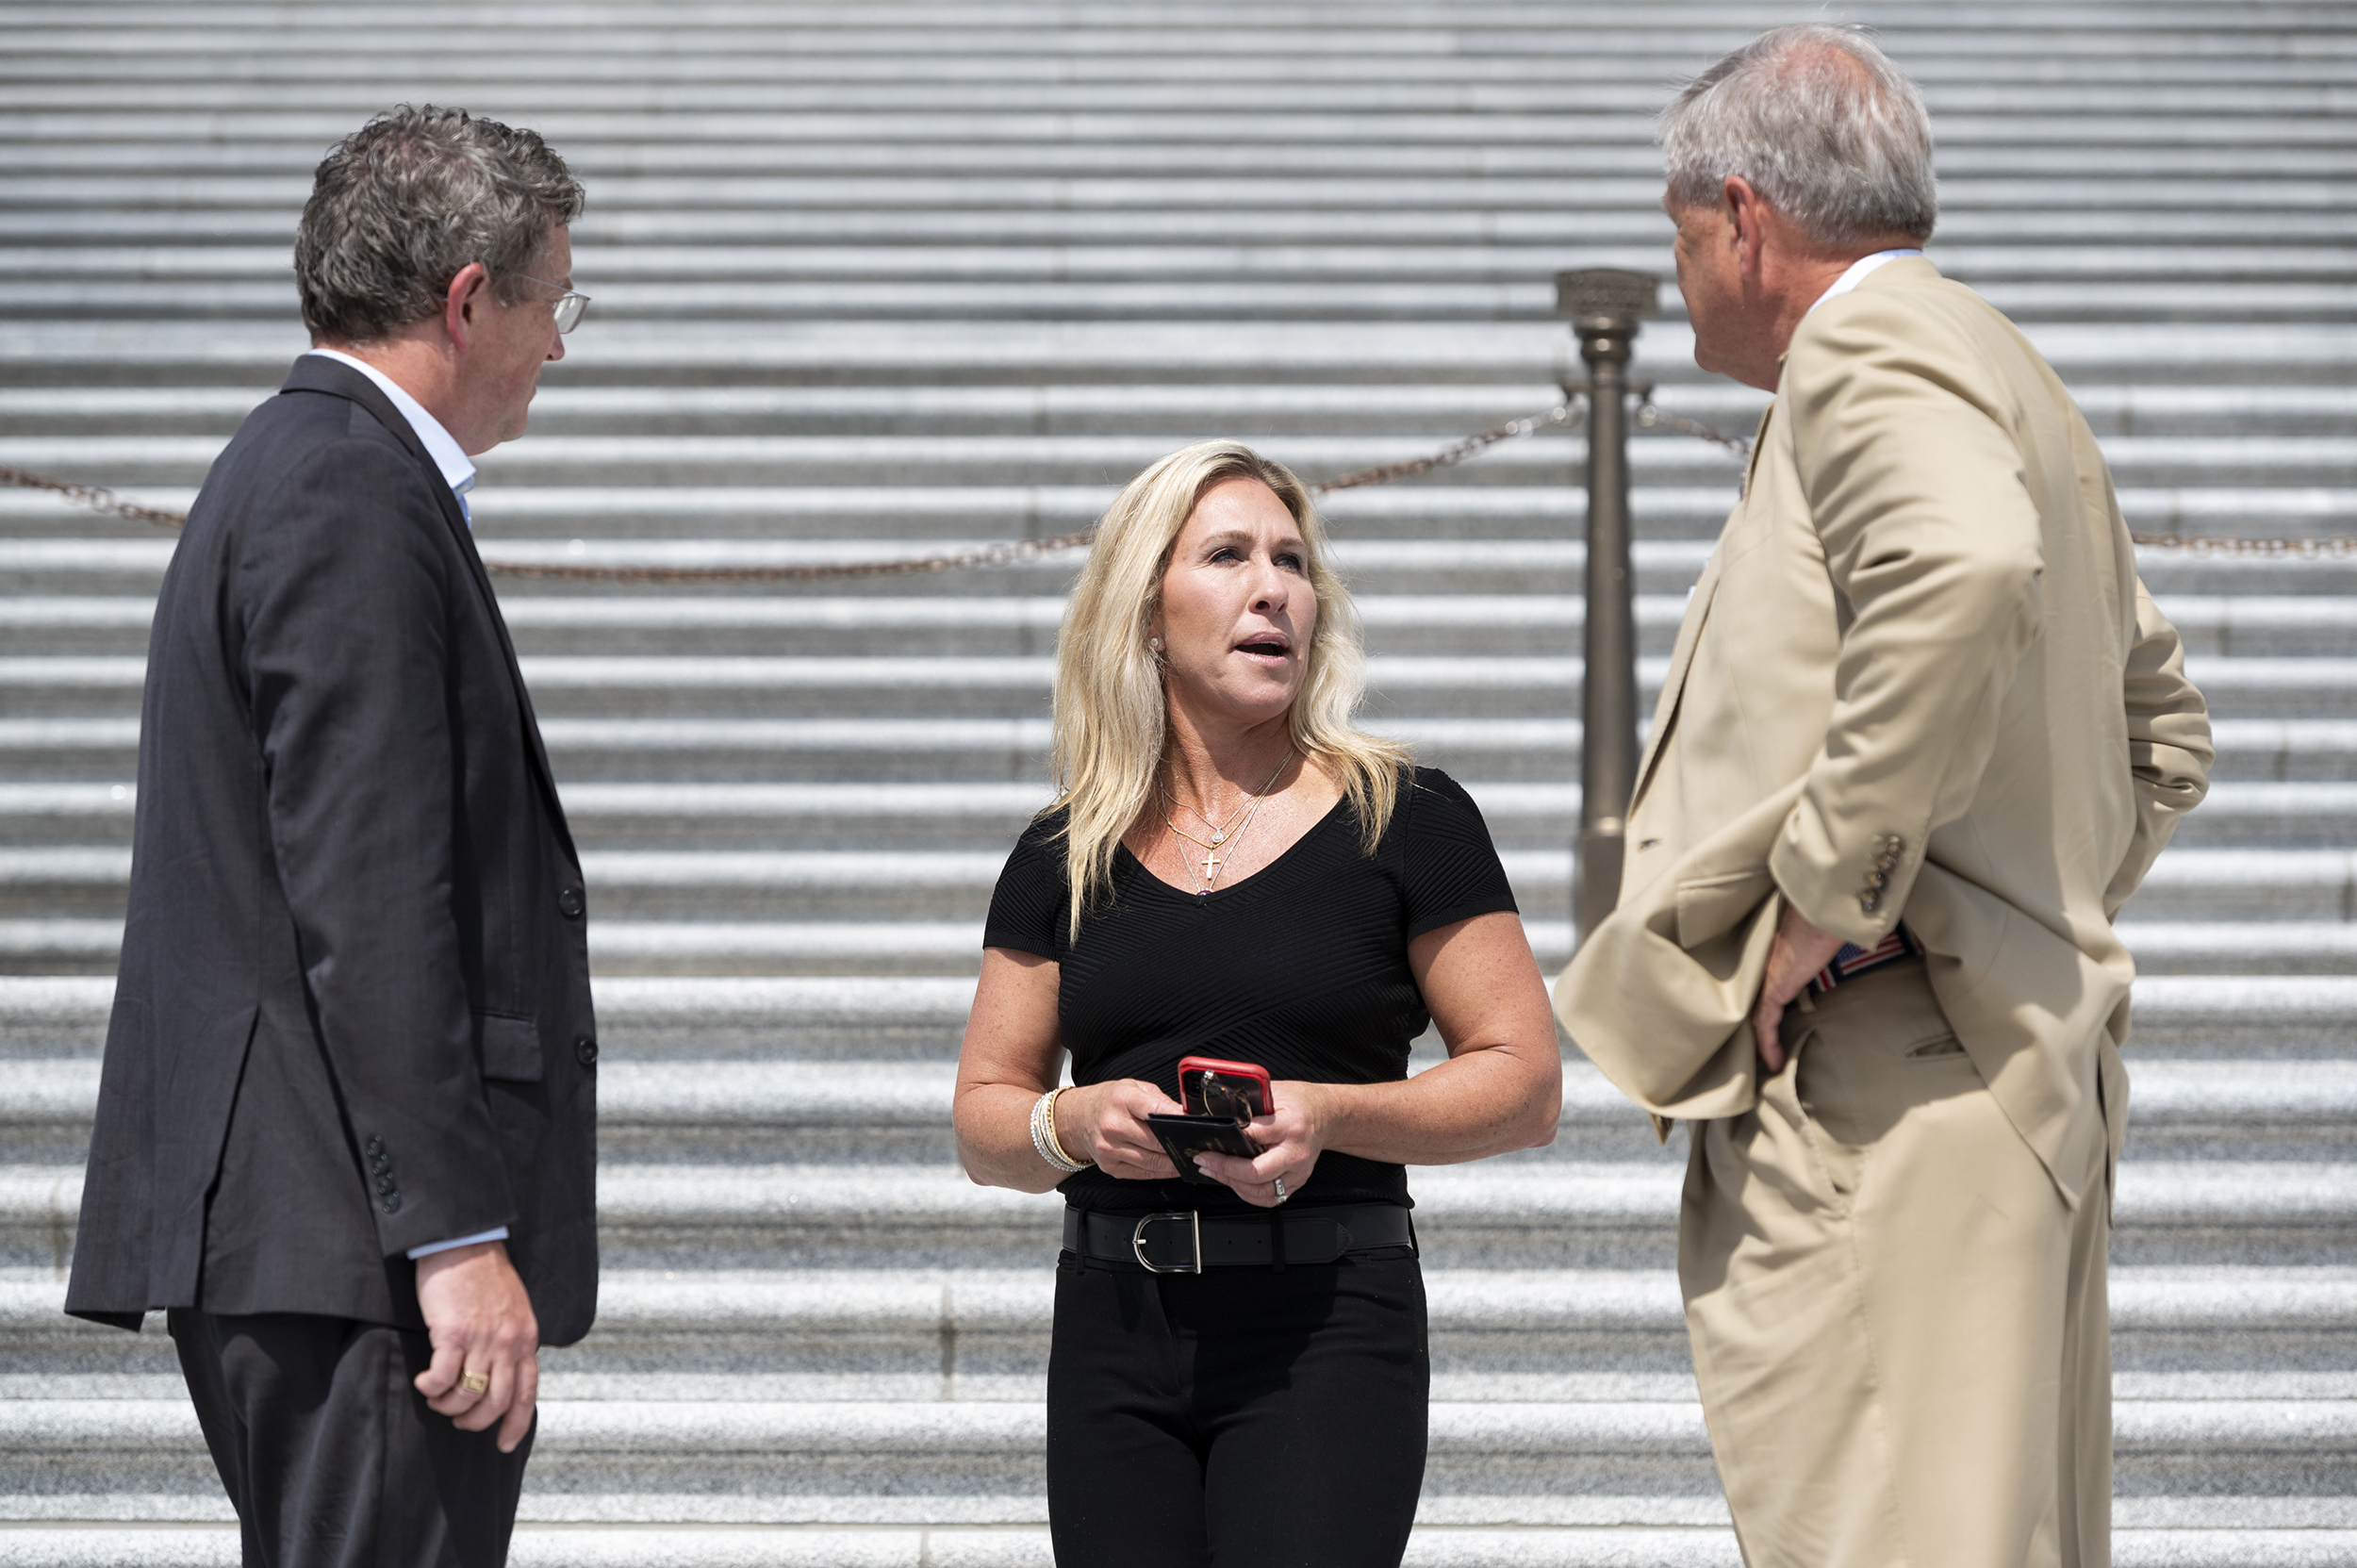 3 GOP House members lose appeals over $500 fines for not wearing masks